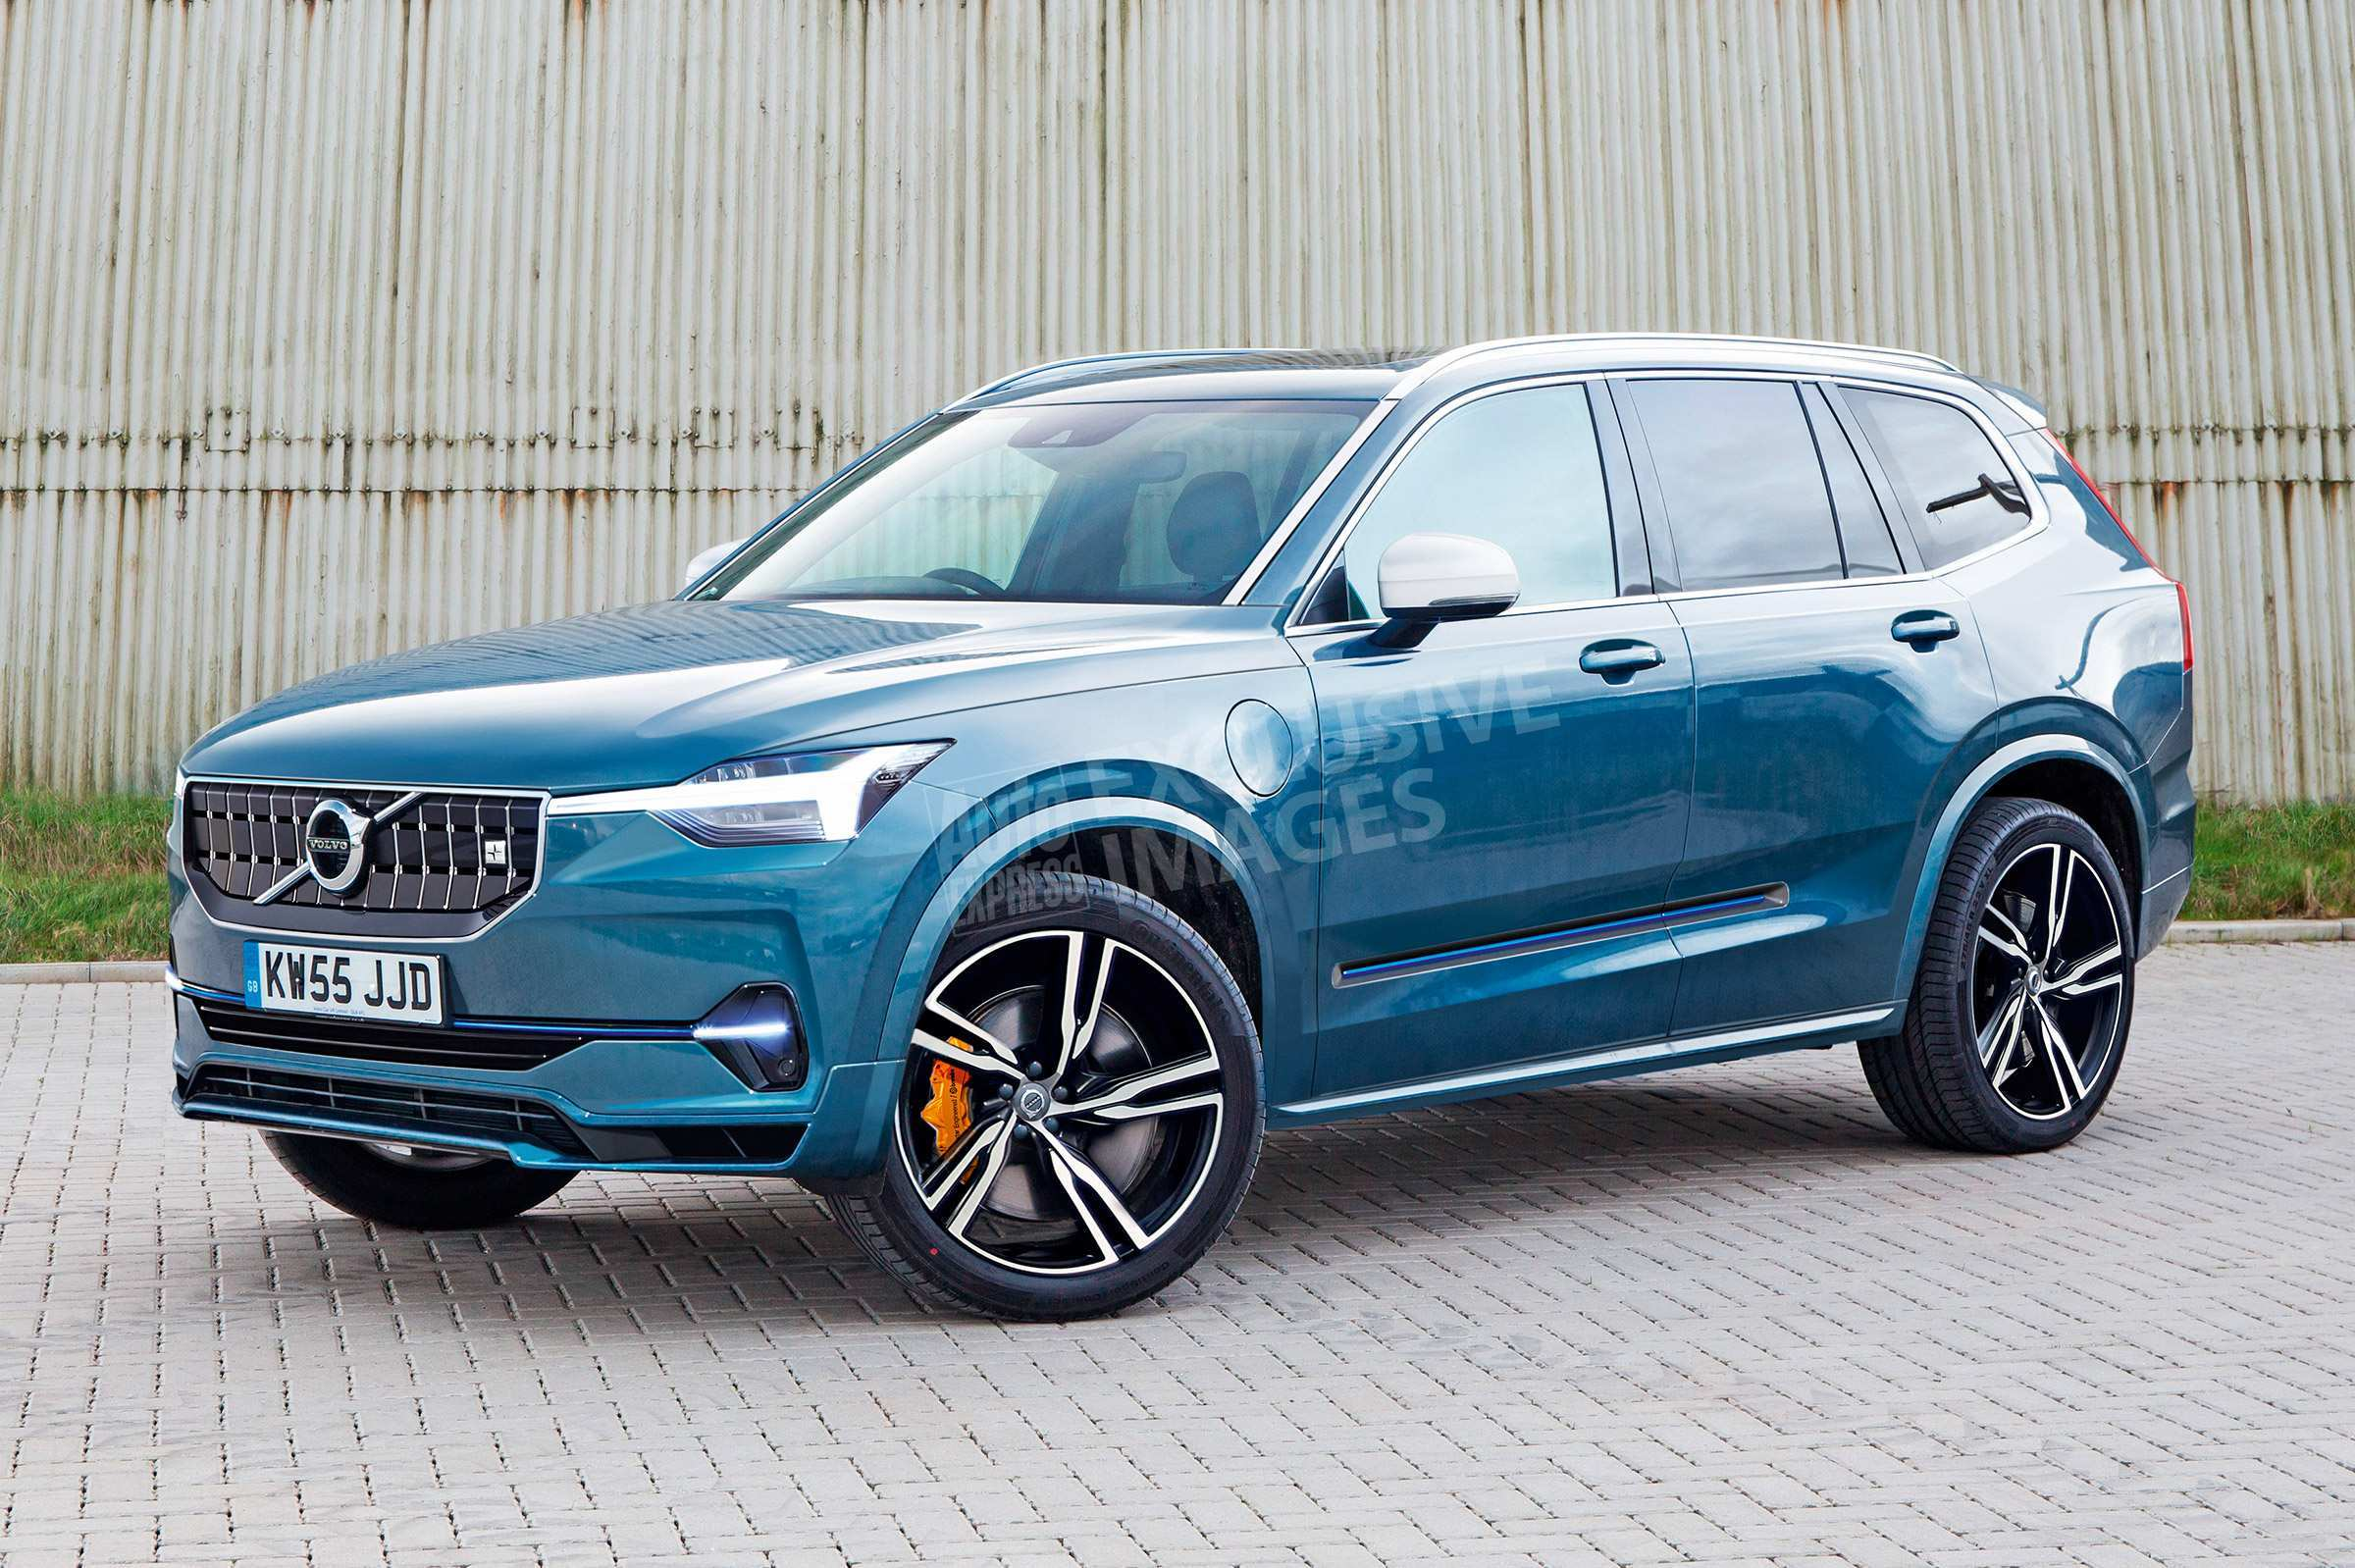 59 All New Volvo Xc90 Facelift 2020 Uk Engine